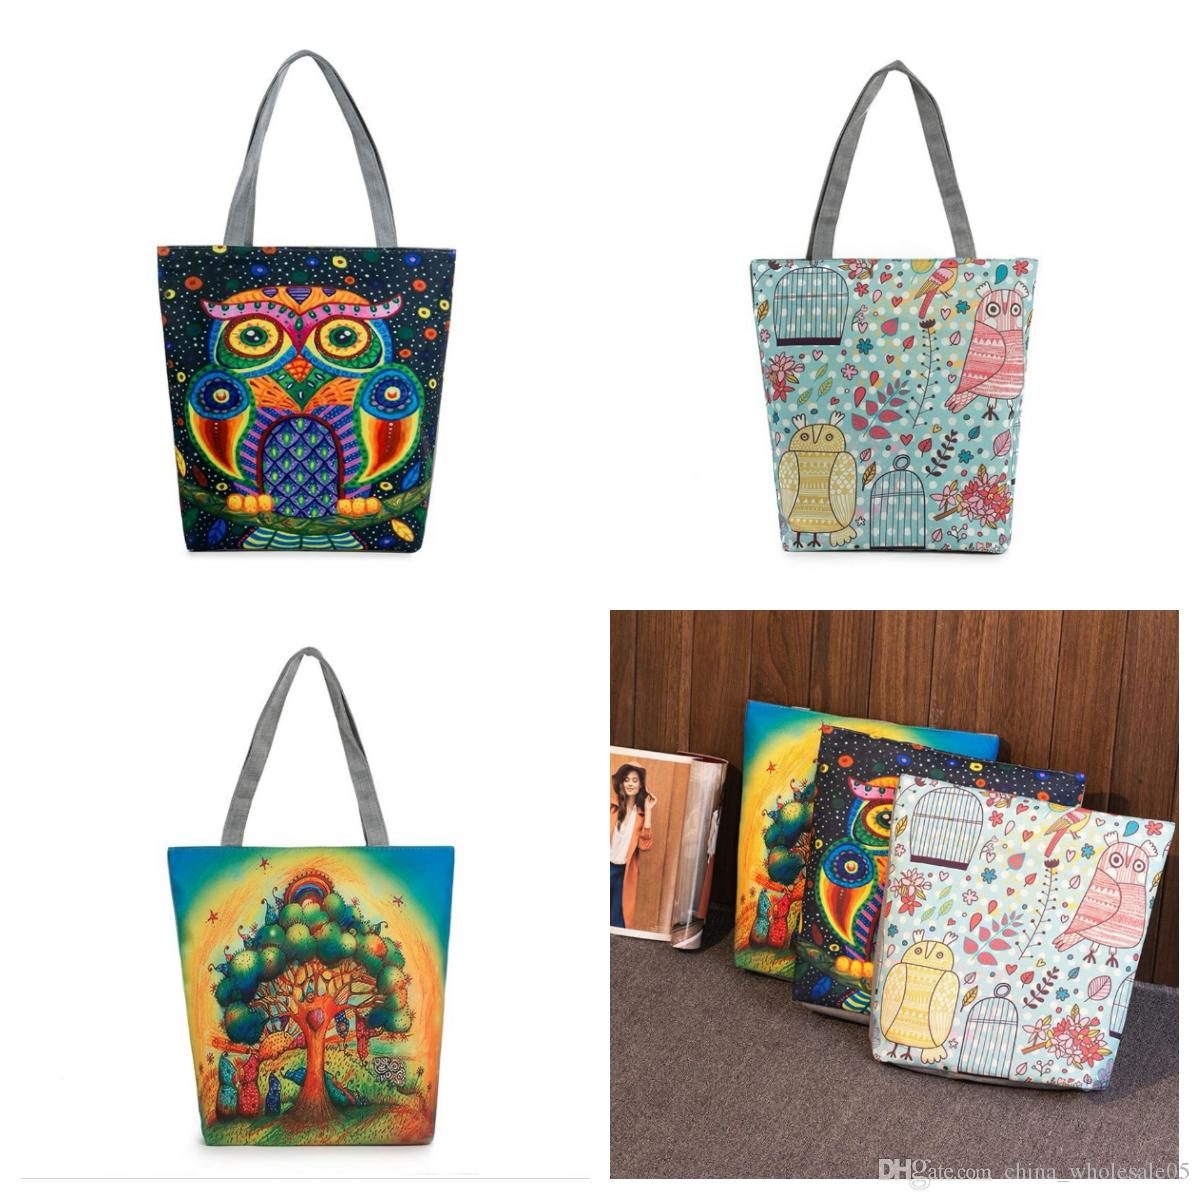 87bc9a54b0 Wholesale Cartoon Tree Owl Printed Canvas Tote Female Casual Beach ...